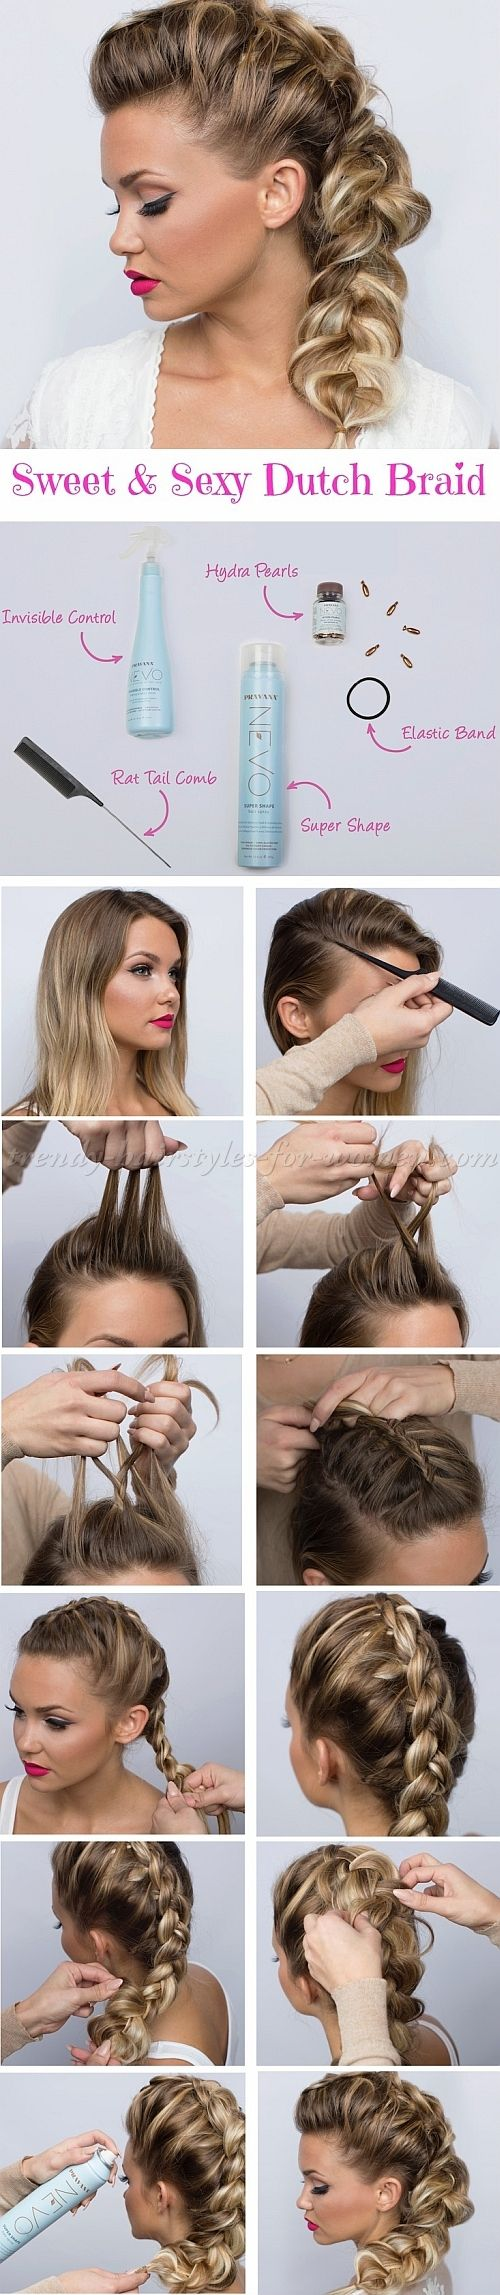 1000+ ideas about Dutch Braid Tutorials on Pinterest